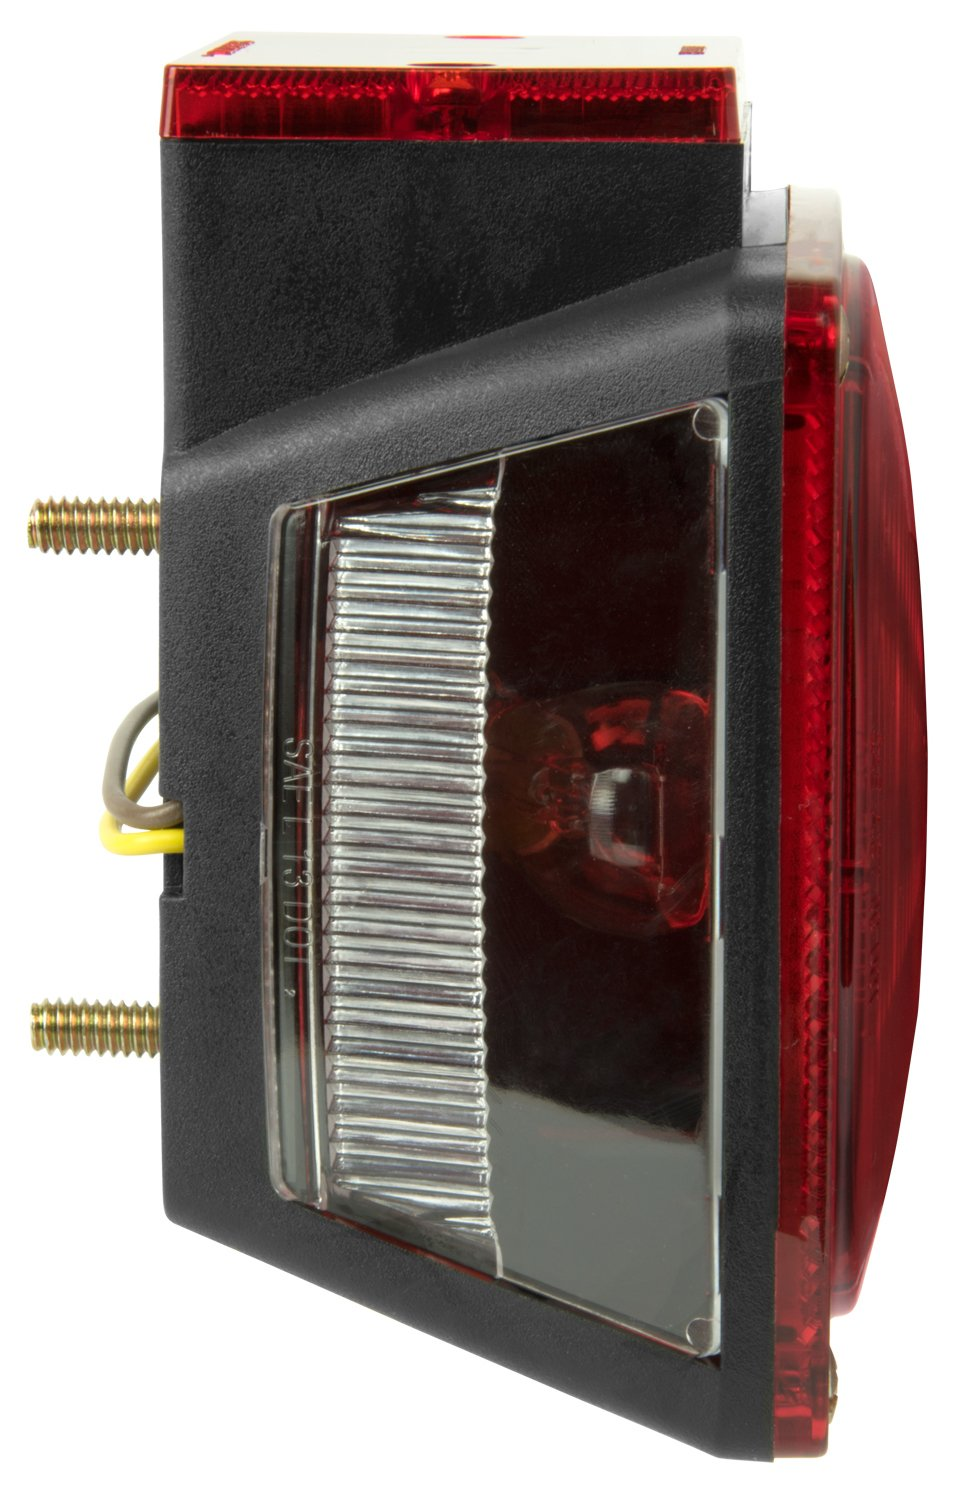 Blazer International Trailer /& Towing Accessories Red Pack of 48 Blazer T83B-48 7-Function Square Combination Stop//Tail//Turn Light-48 Pack